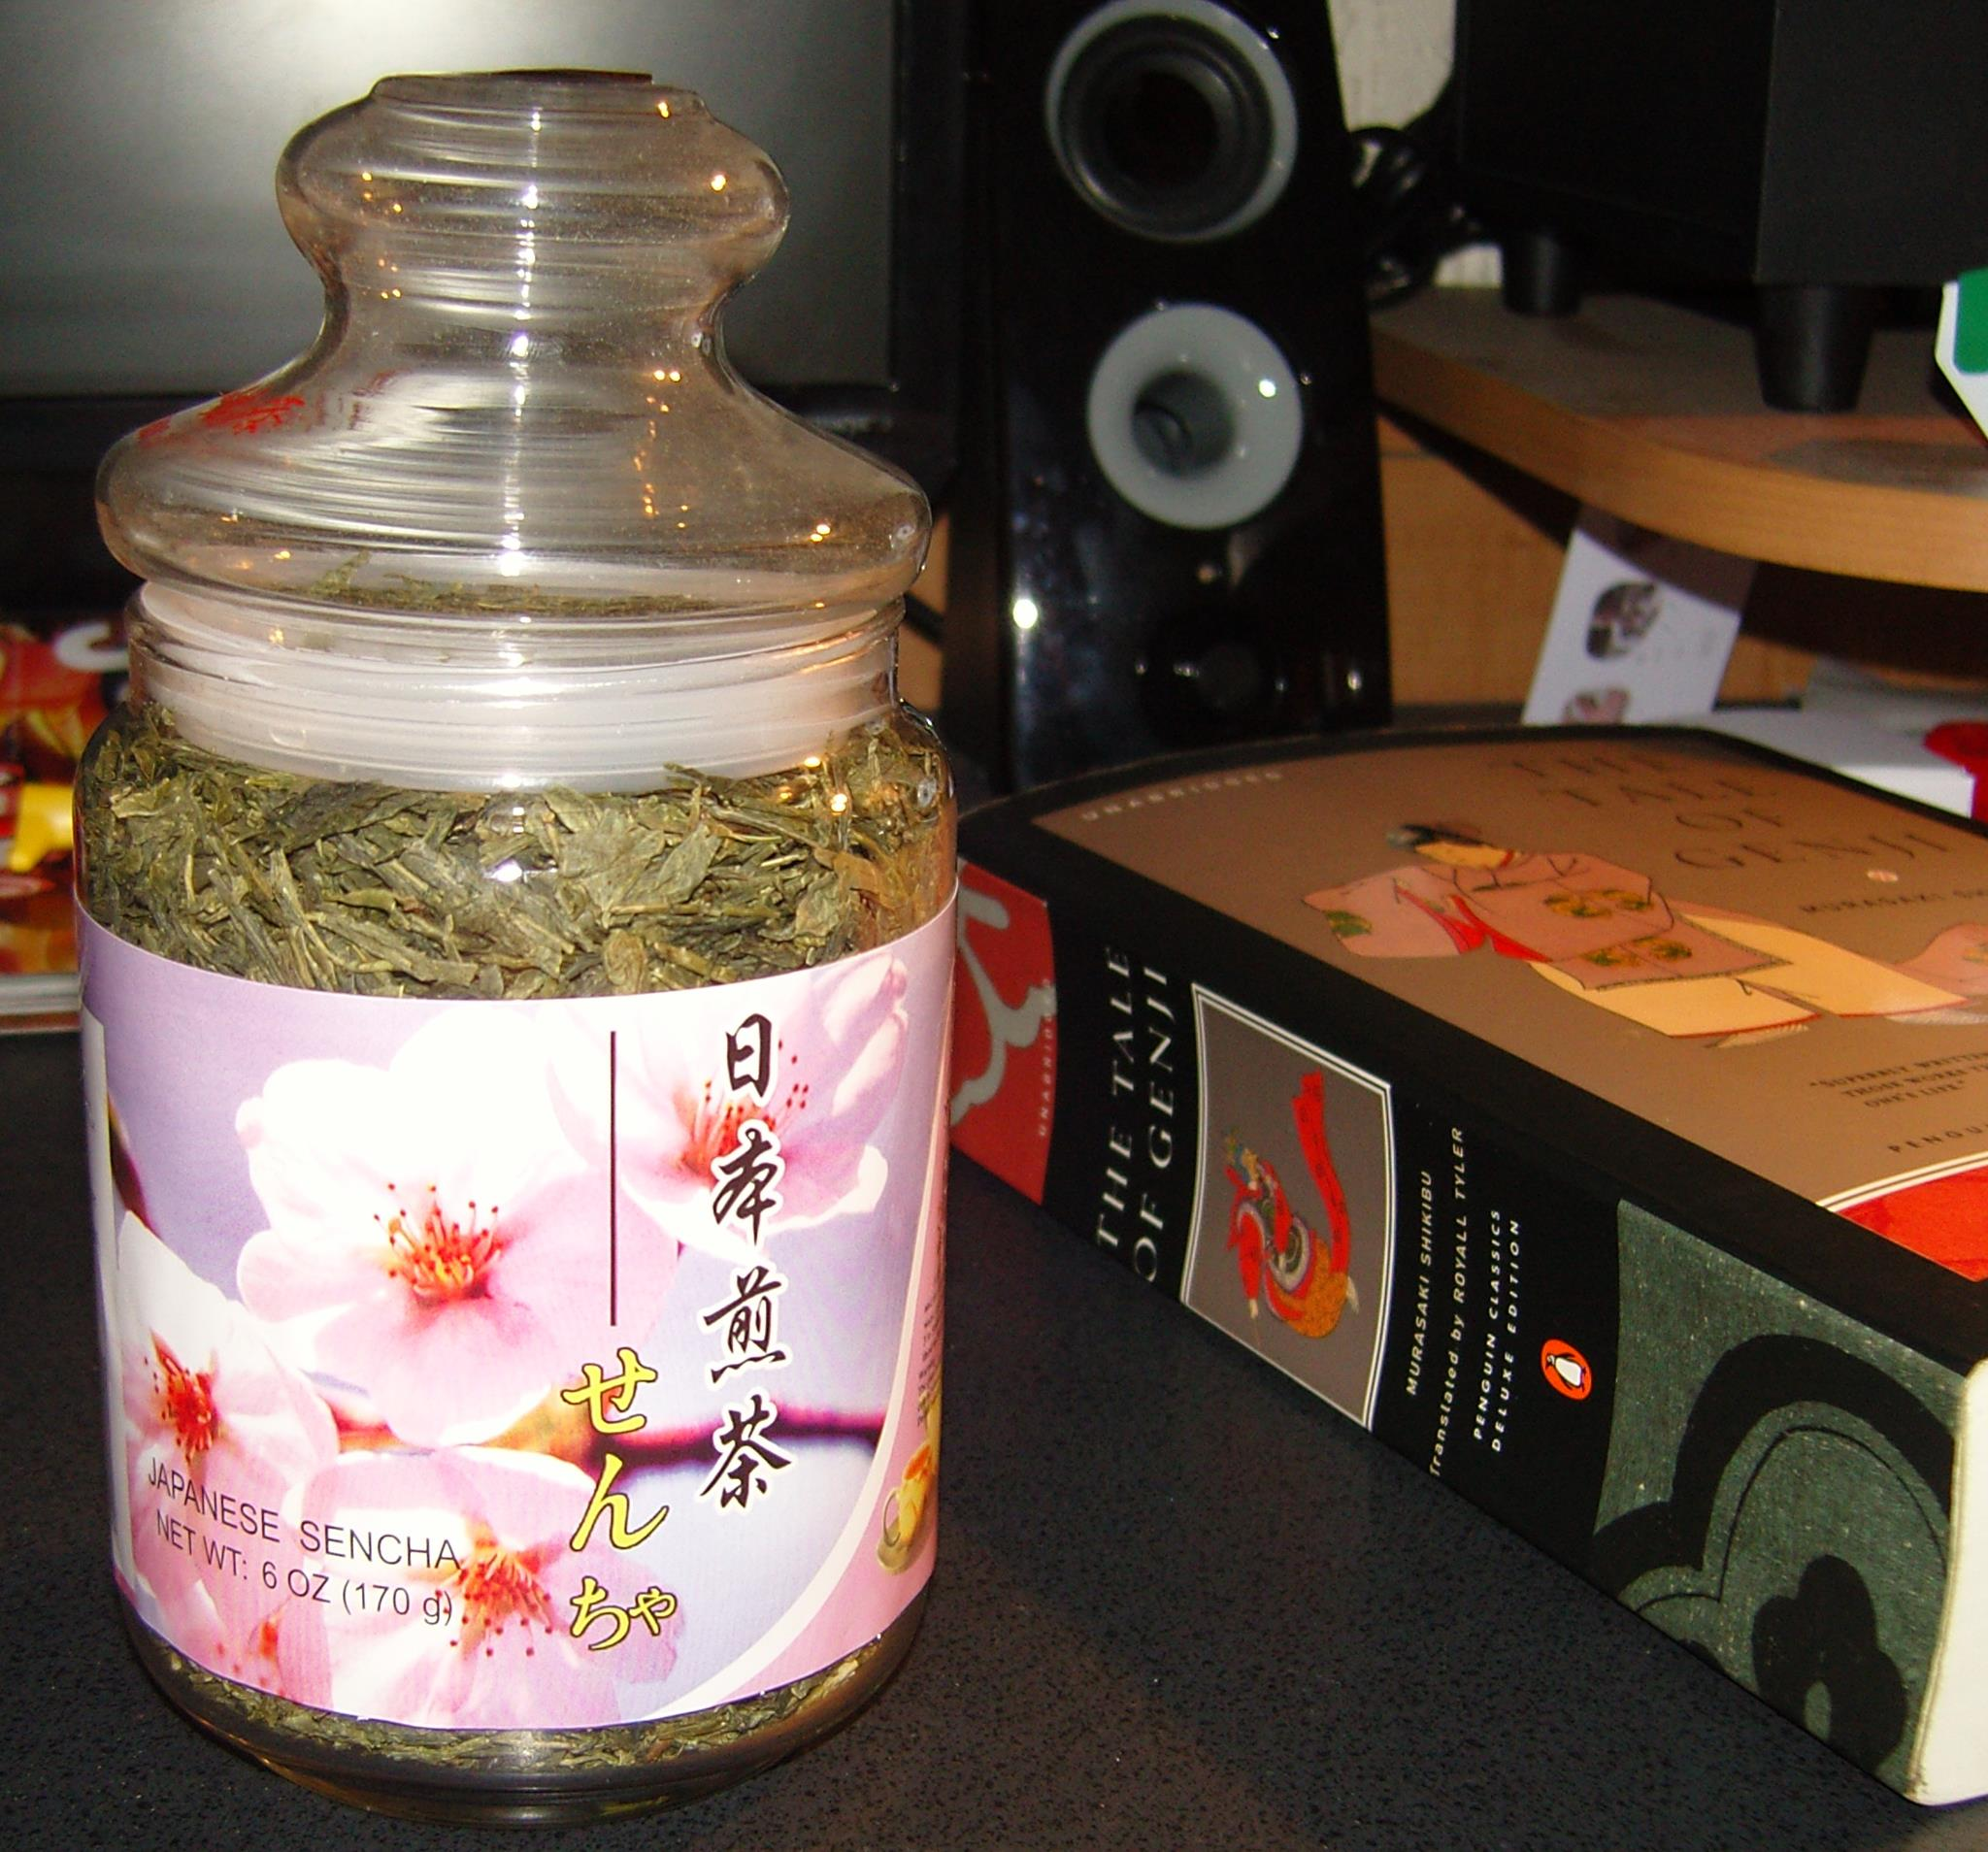 I recently bought this from the local Chinese supermarket. It'd have cost me, close to, £20 online. At the store? £3.95